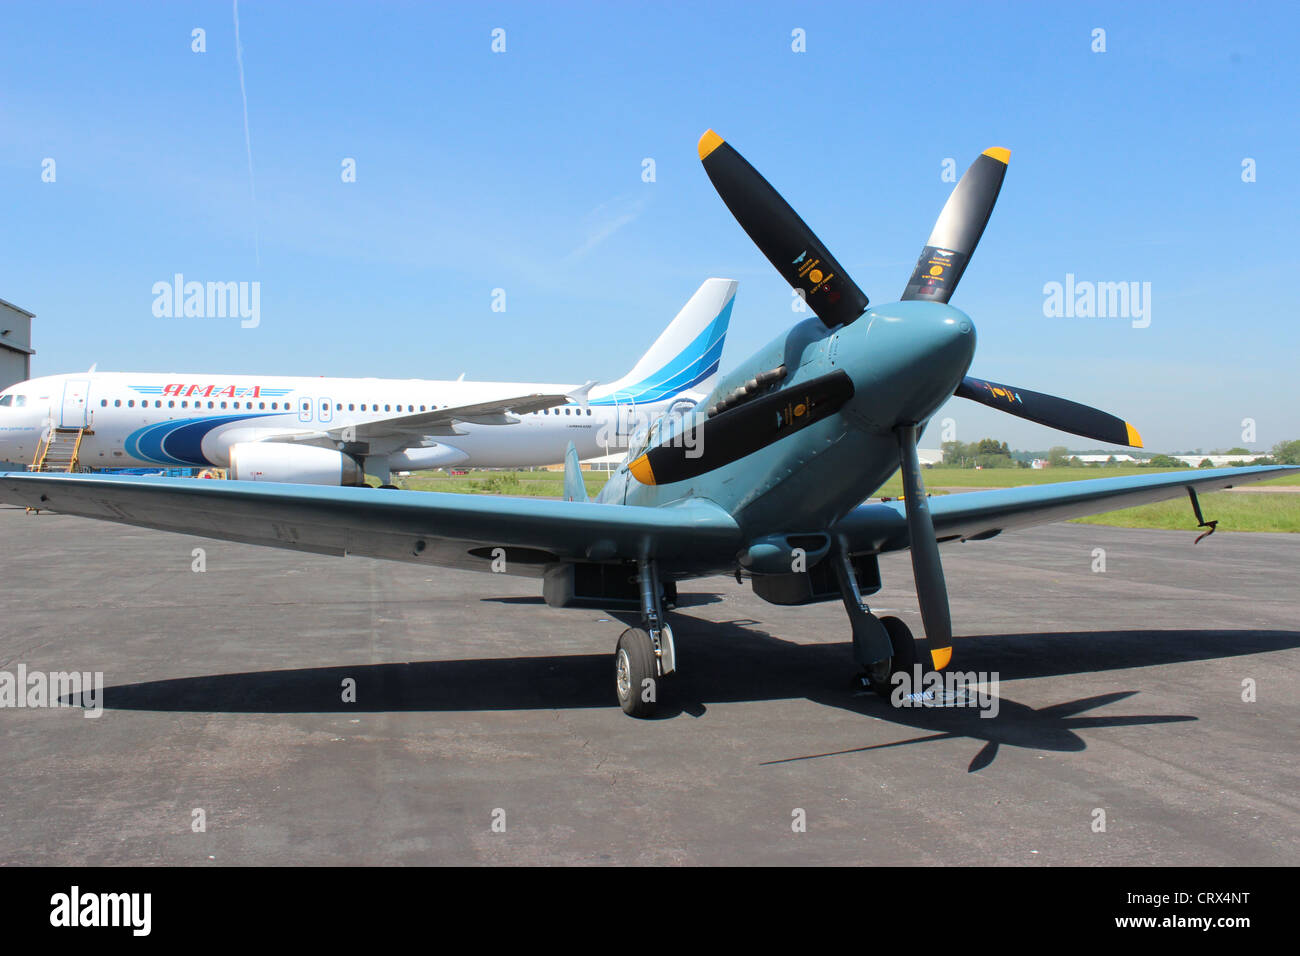 Bbmf Stock Photos & Bbmf Stock Images - Alamy